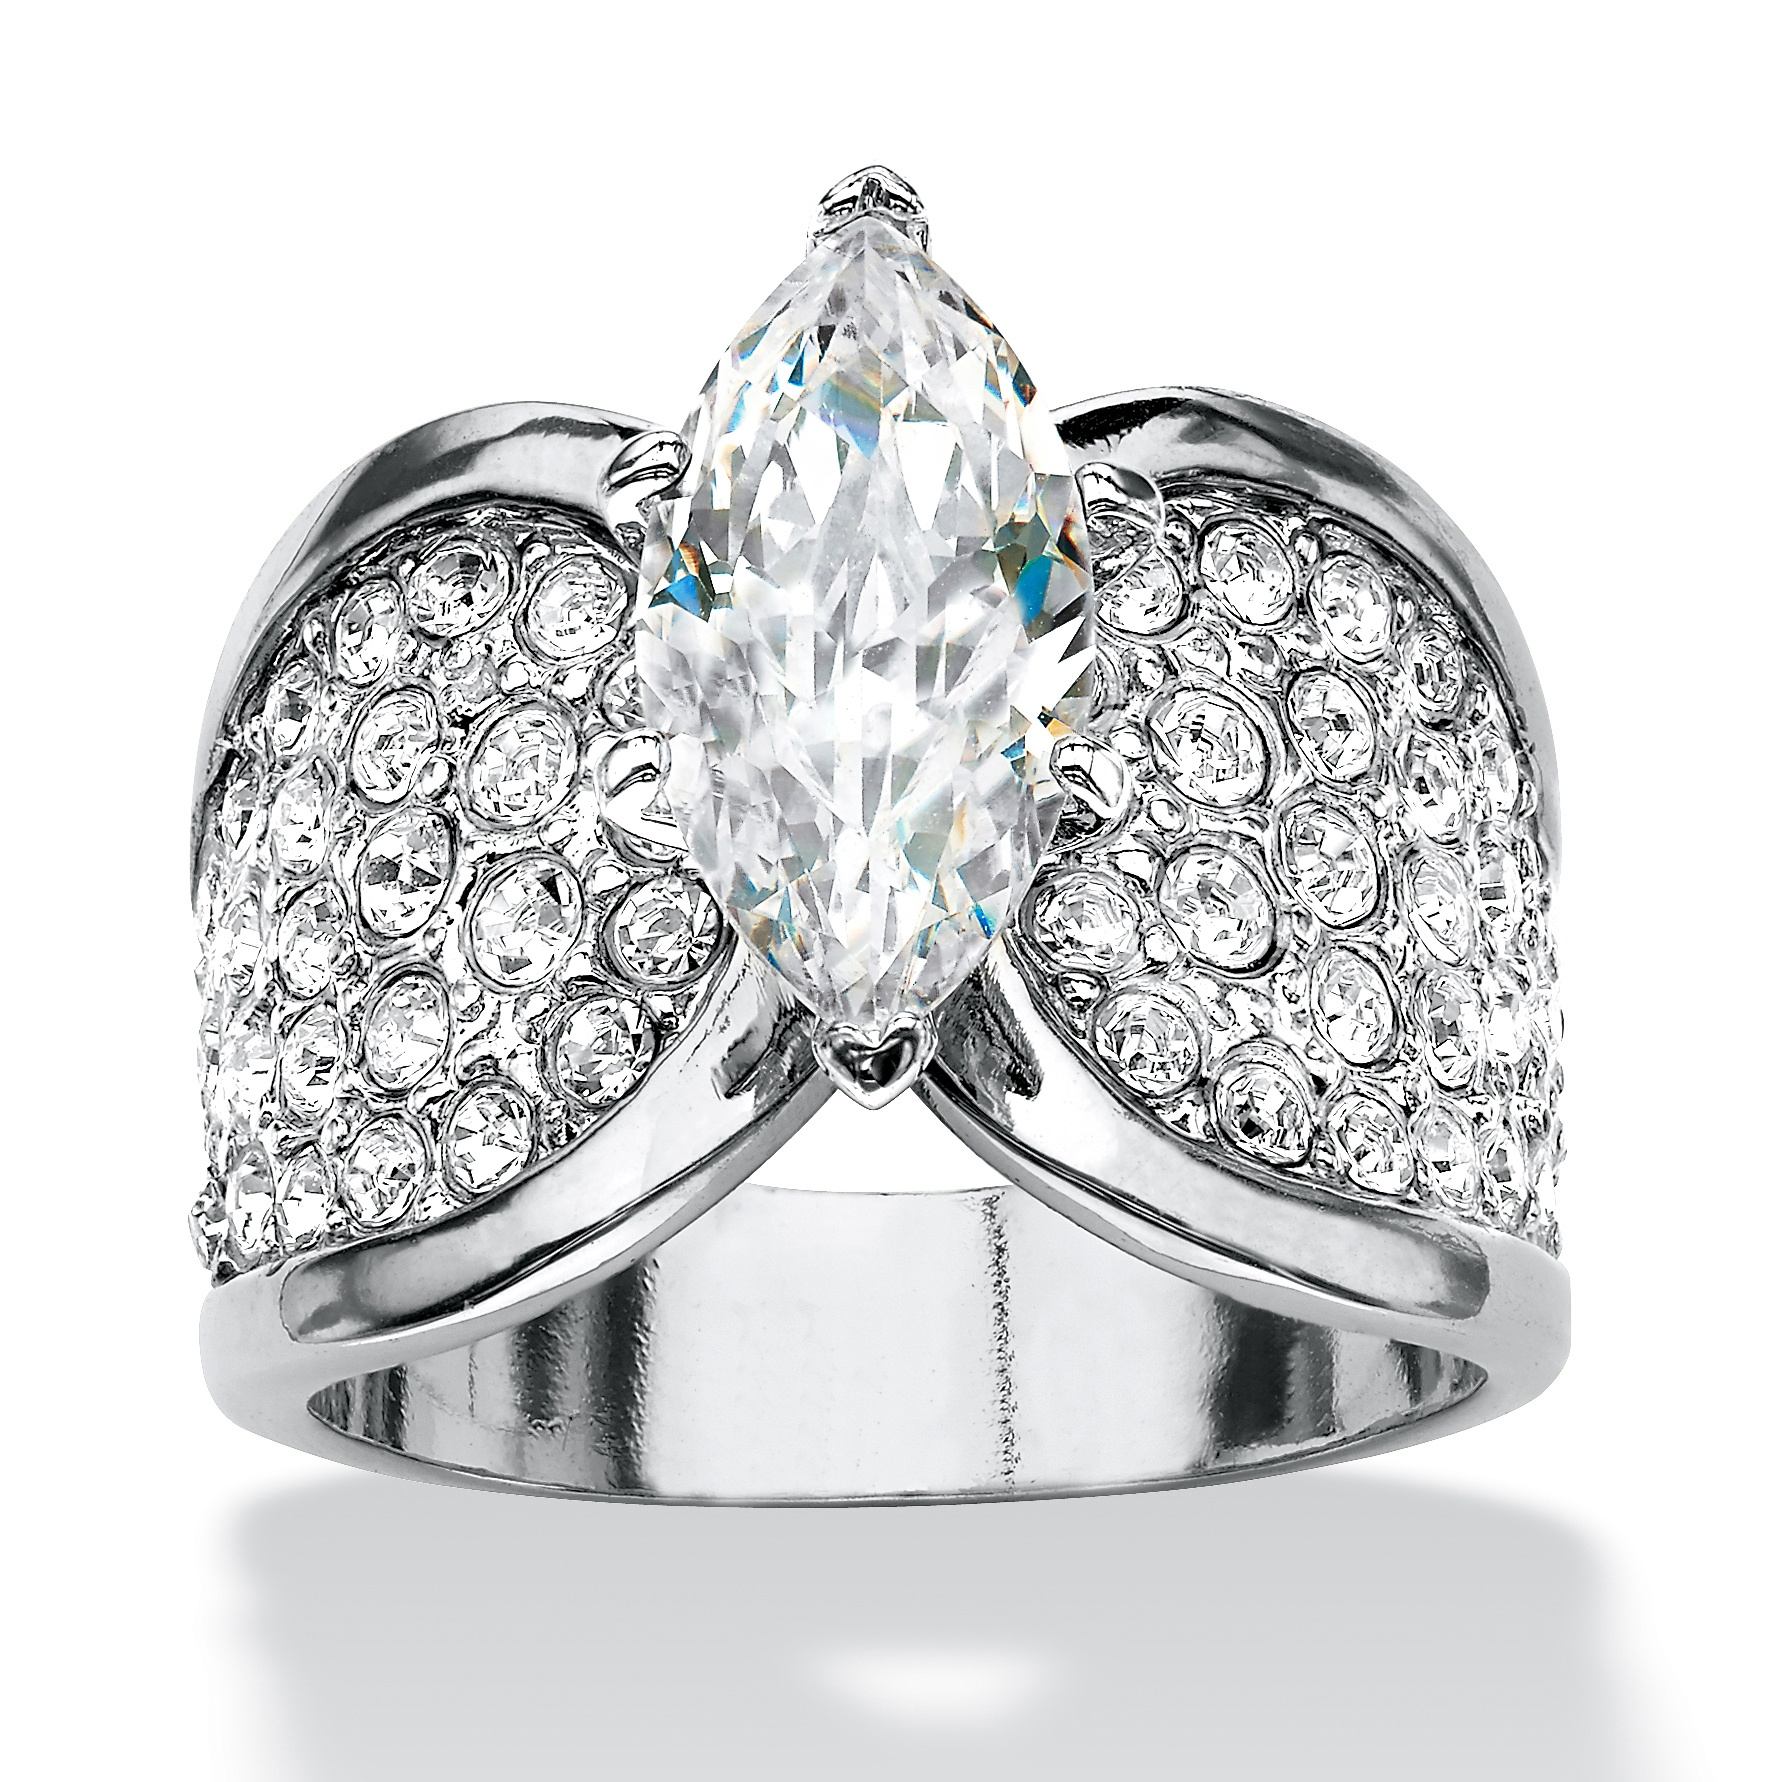 Marquise Cut And Pave Cubic Zirconia Engagement Ring 2 48